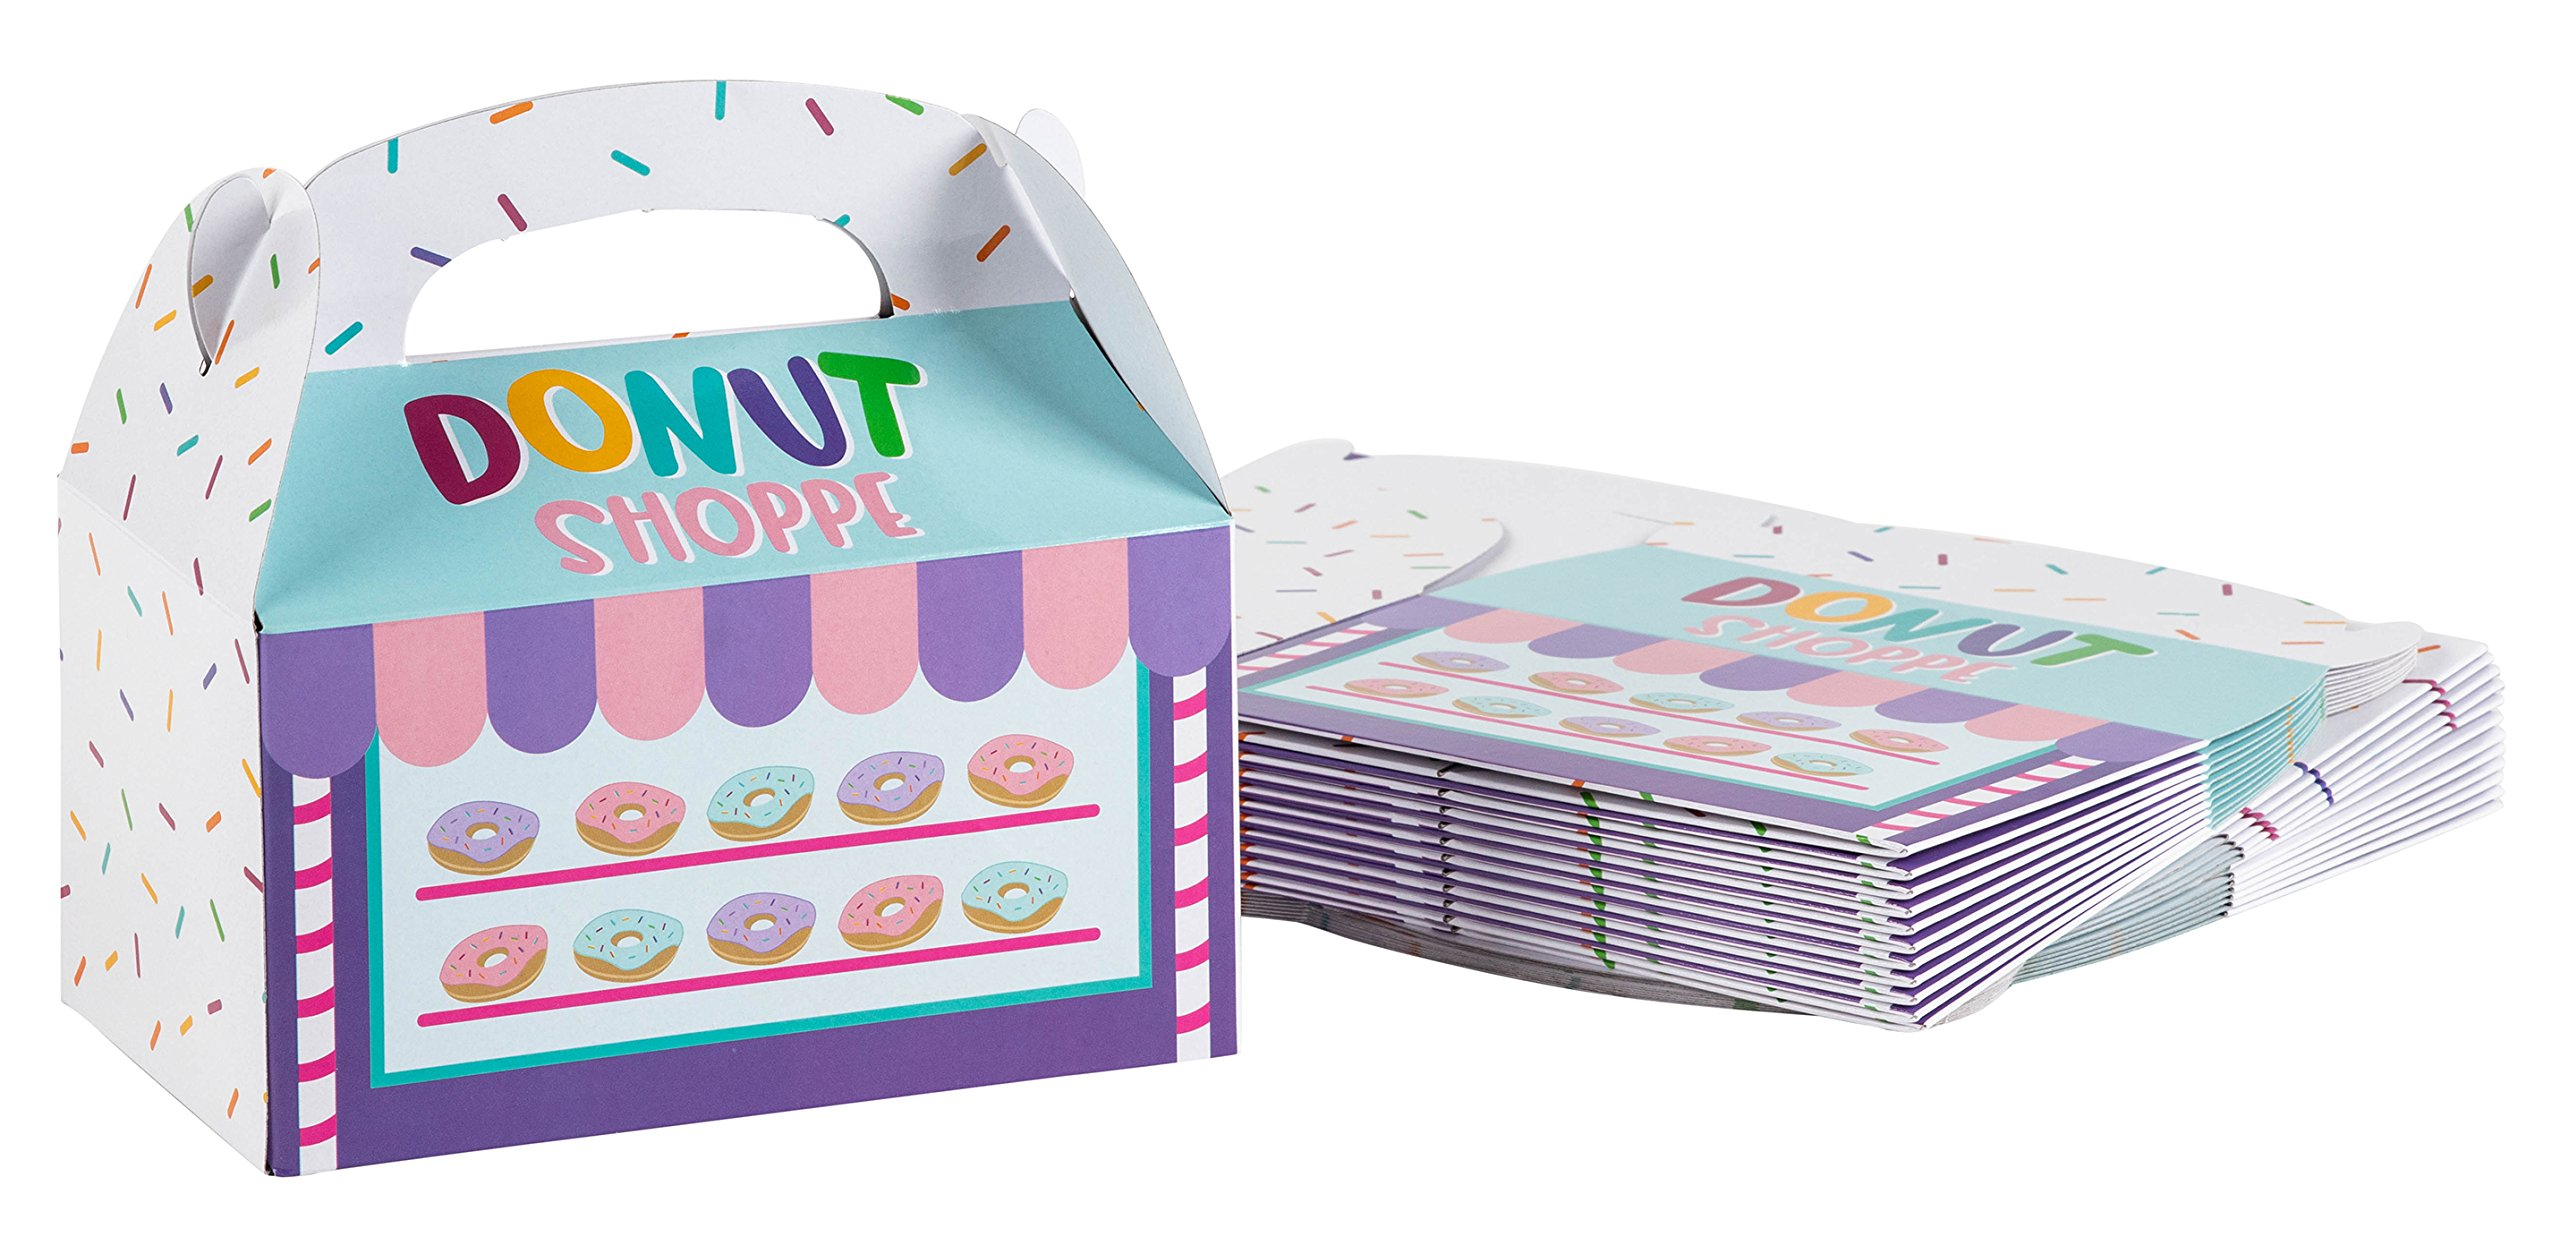 Treat Boxes - 24-Pack Paper Party Favor Boxes, Donut Shop Design Goodie Boxes for Birthdays and Events, 2 Dozen Party Gable Boxes, 6 x 3.3 x 3.6 inches